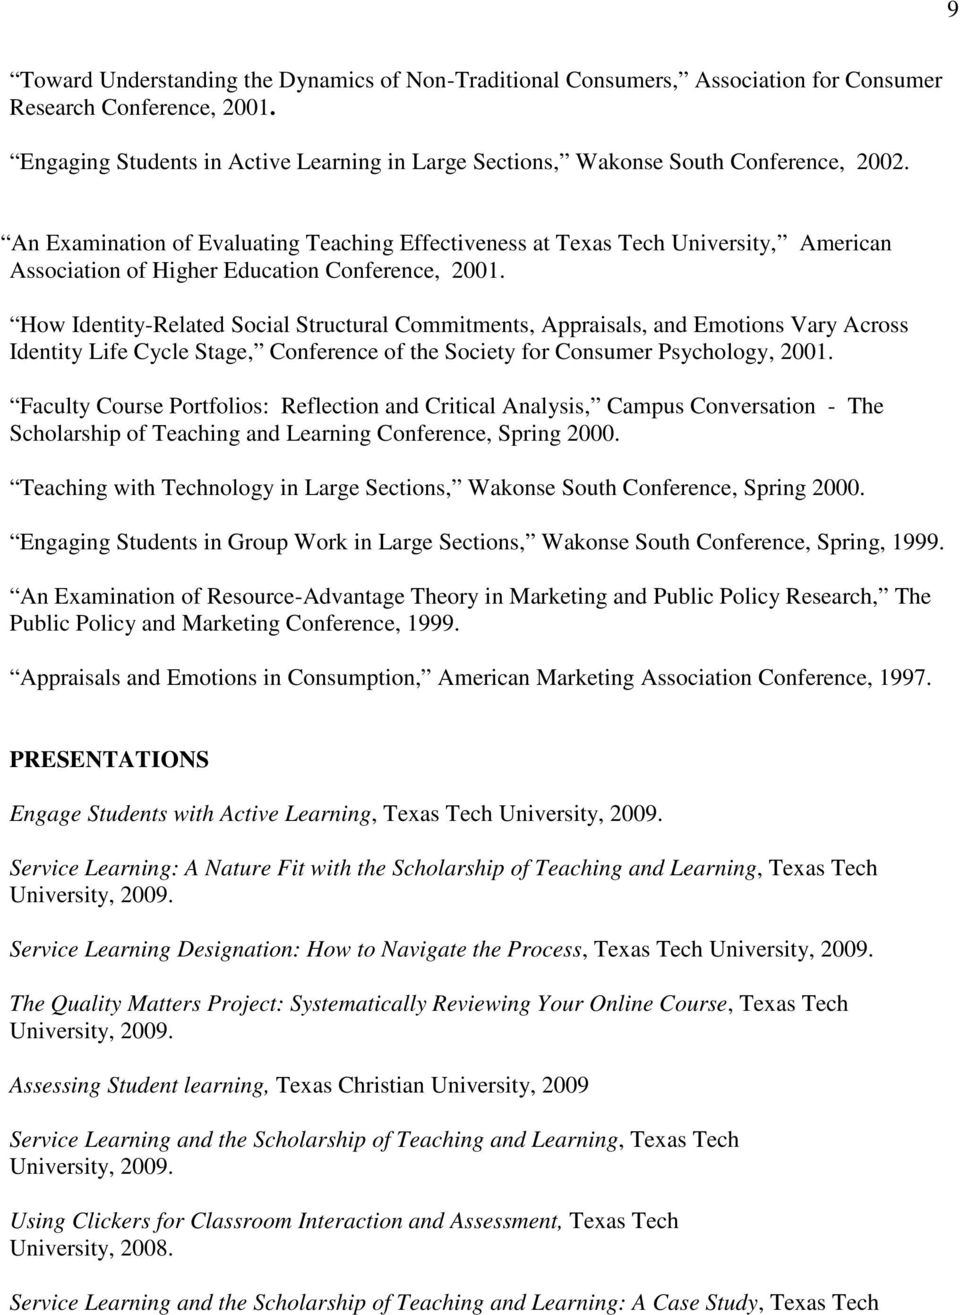 An Examination of Evaluating Teaching Effectiveness at, American Association of Higher Education Conference, 2001.